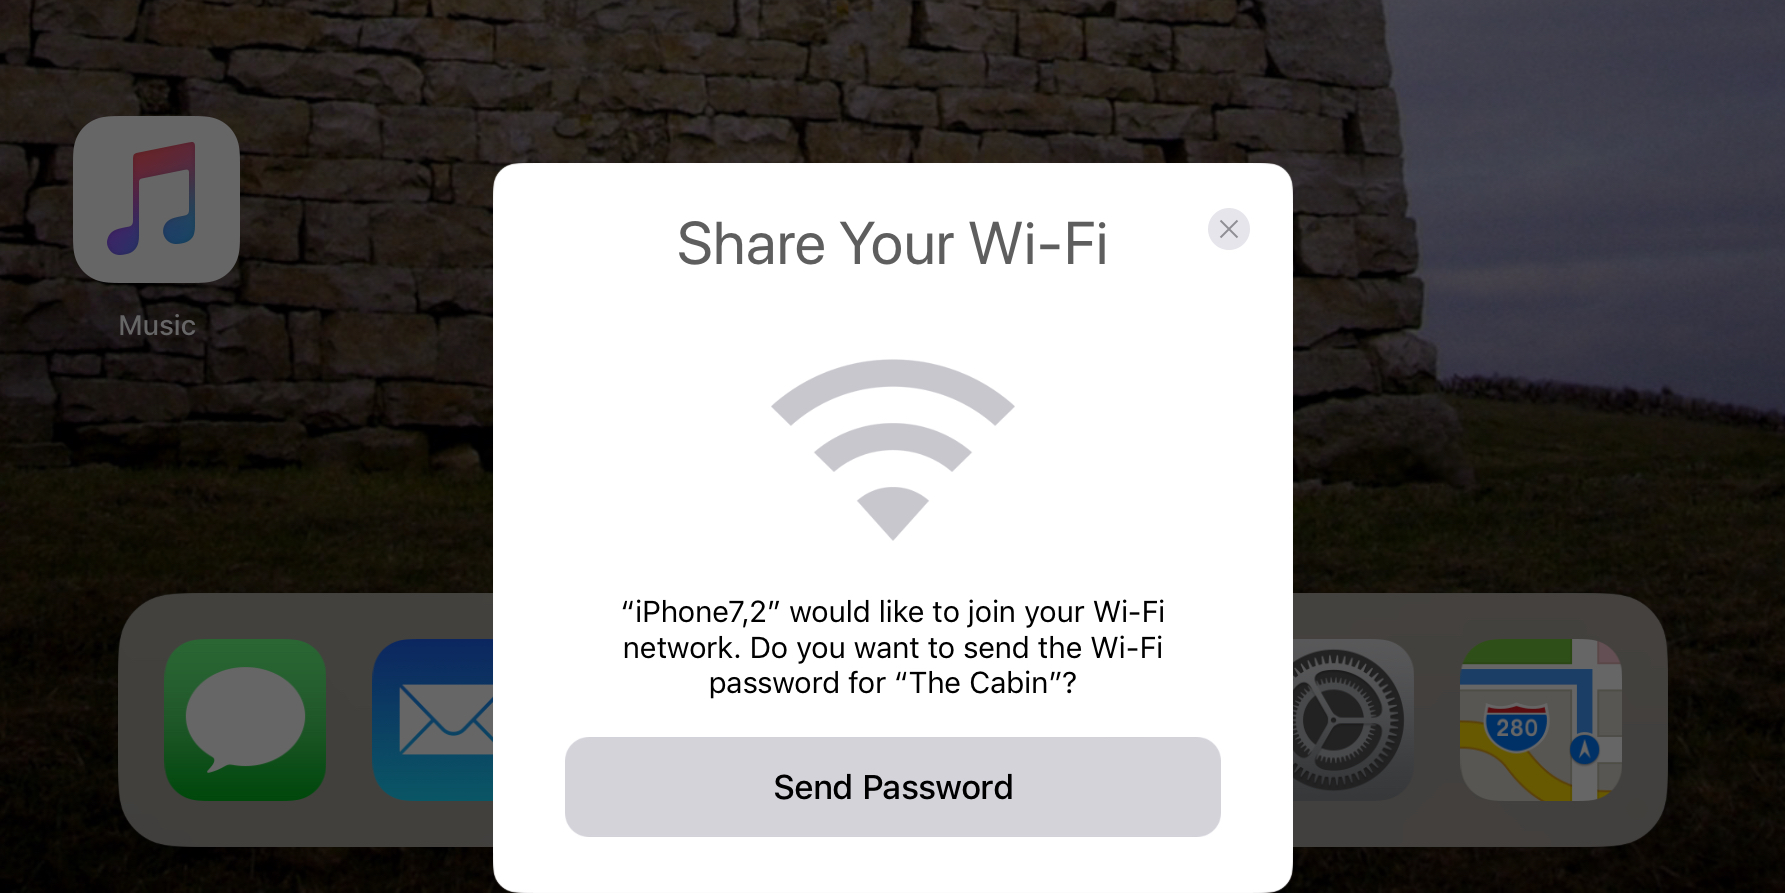 9to5mac.com - Benjamin Mayo - Easily share your WiFi with friends on iOS 11, automatically sends passwords to nearby devices